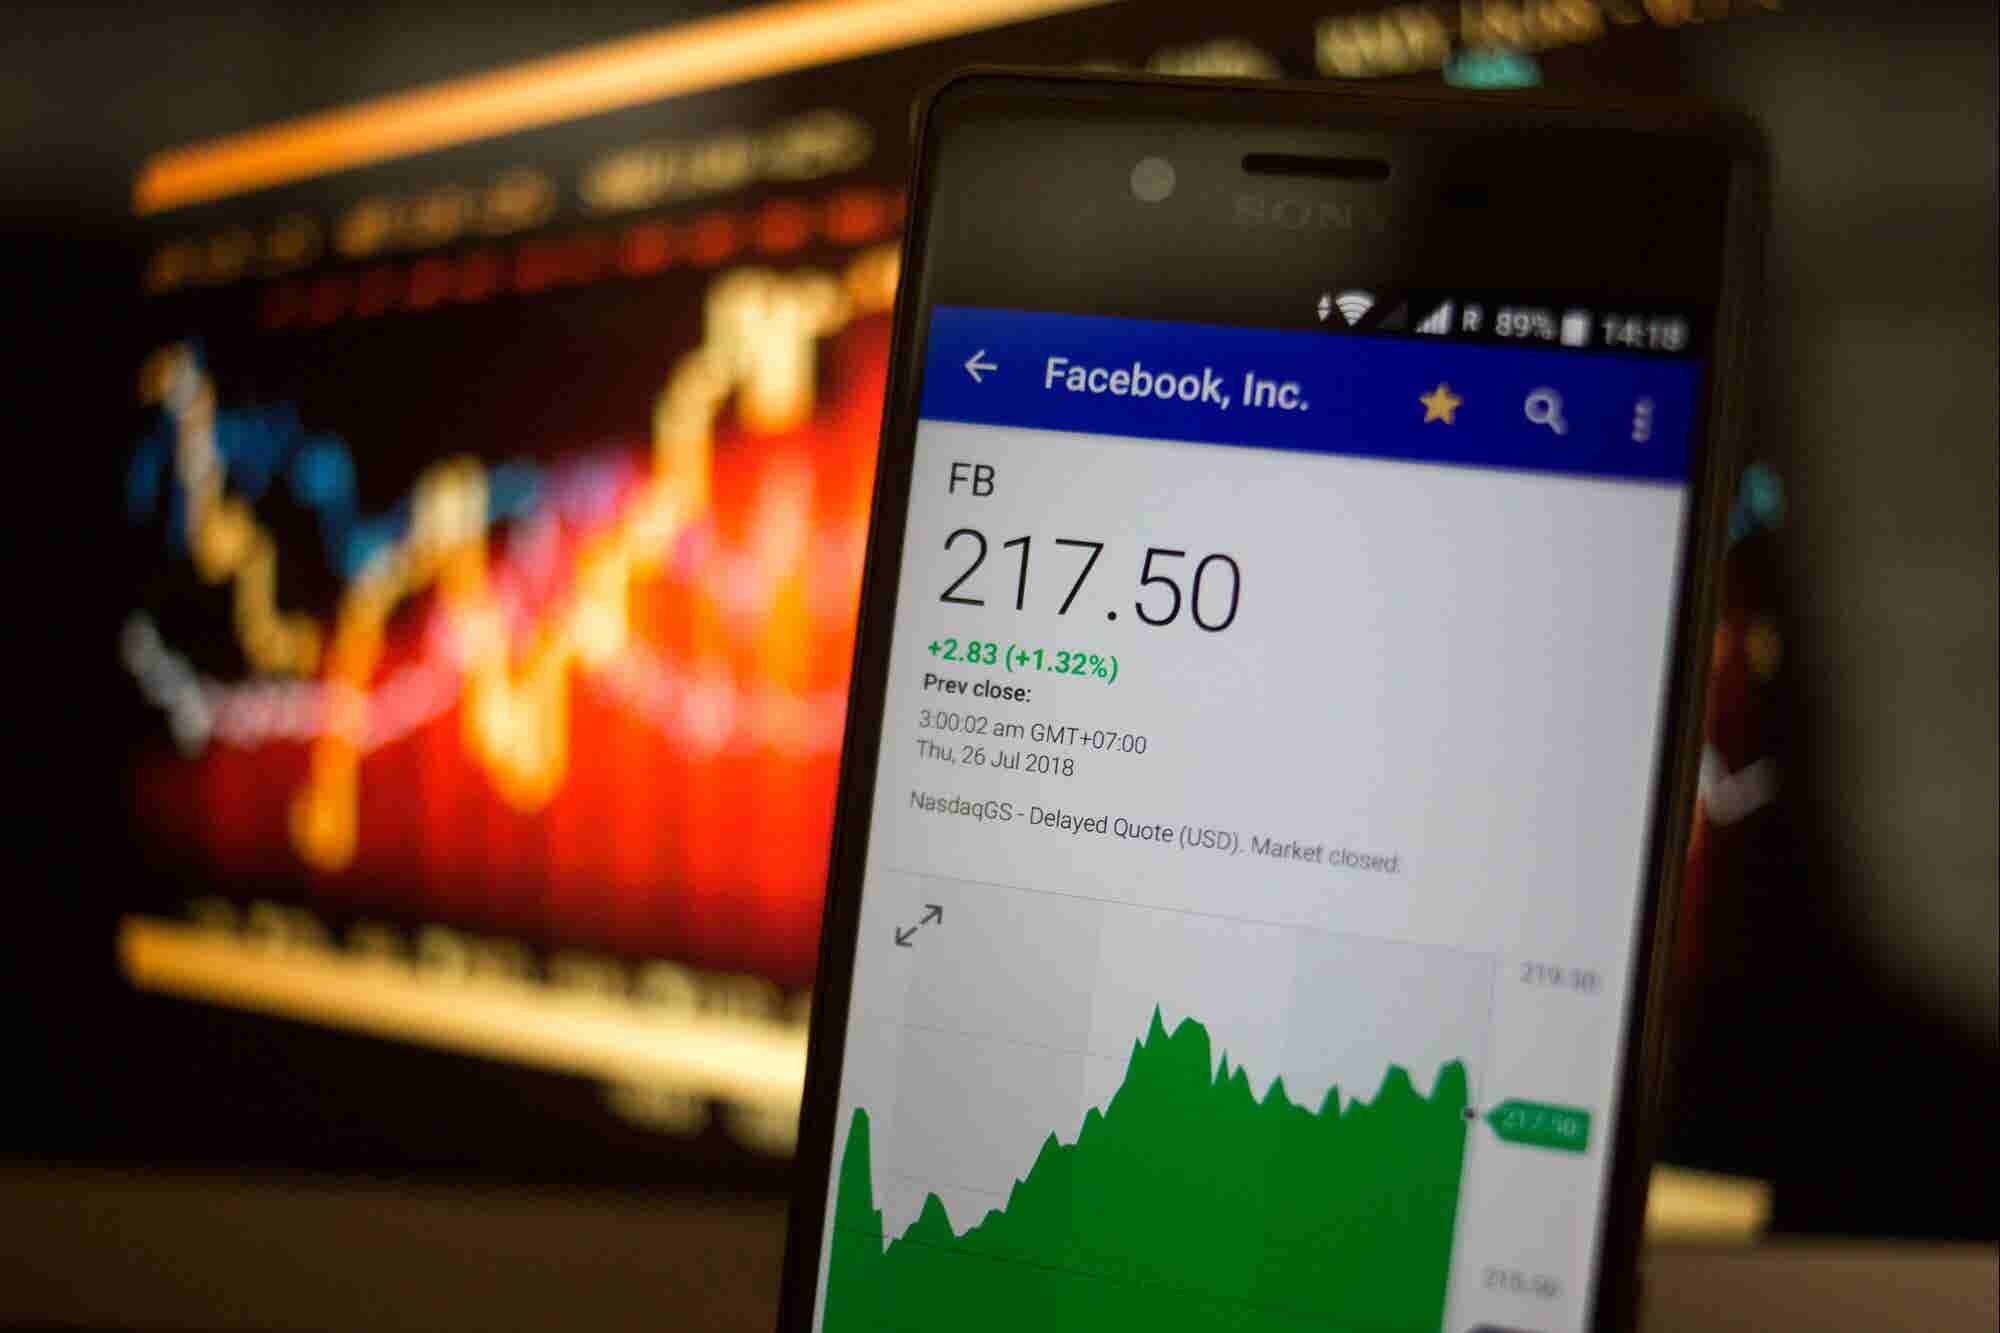 Facebook's Stock Tanks and the 'Fortnite' Founder Is Now a Billionaire...